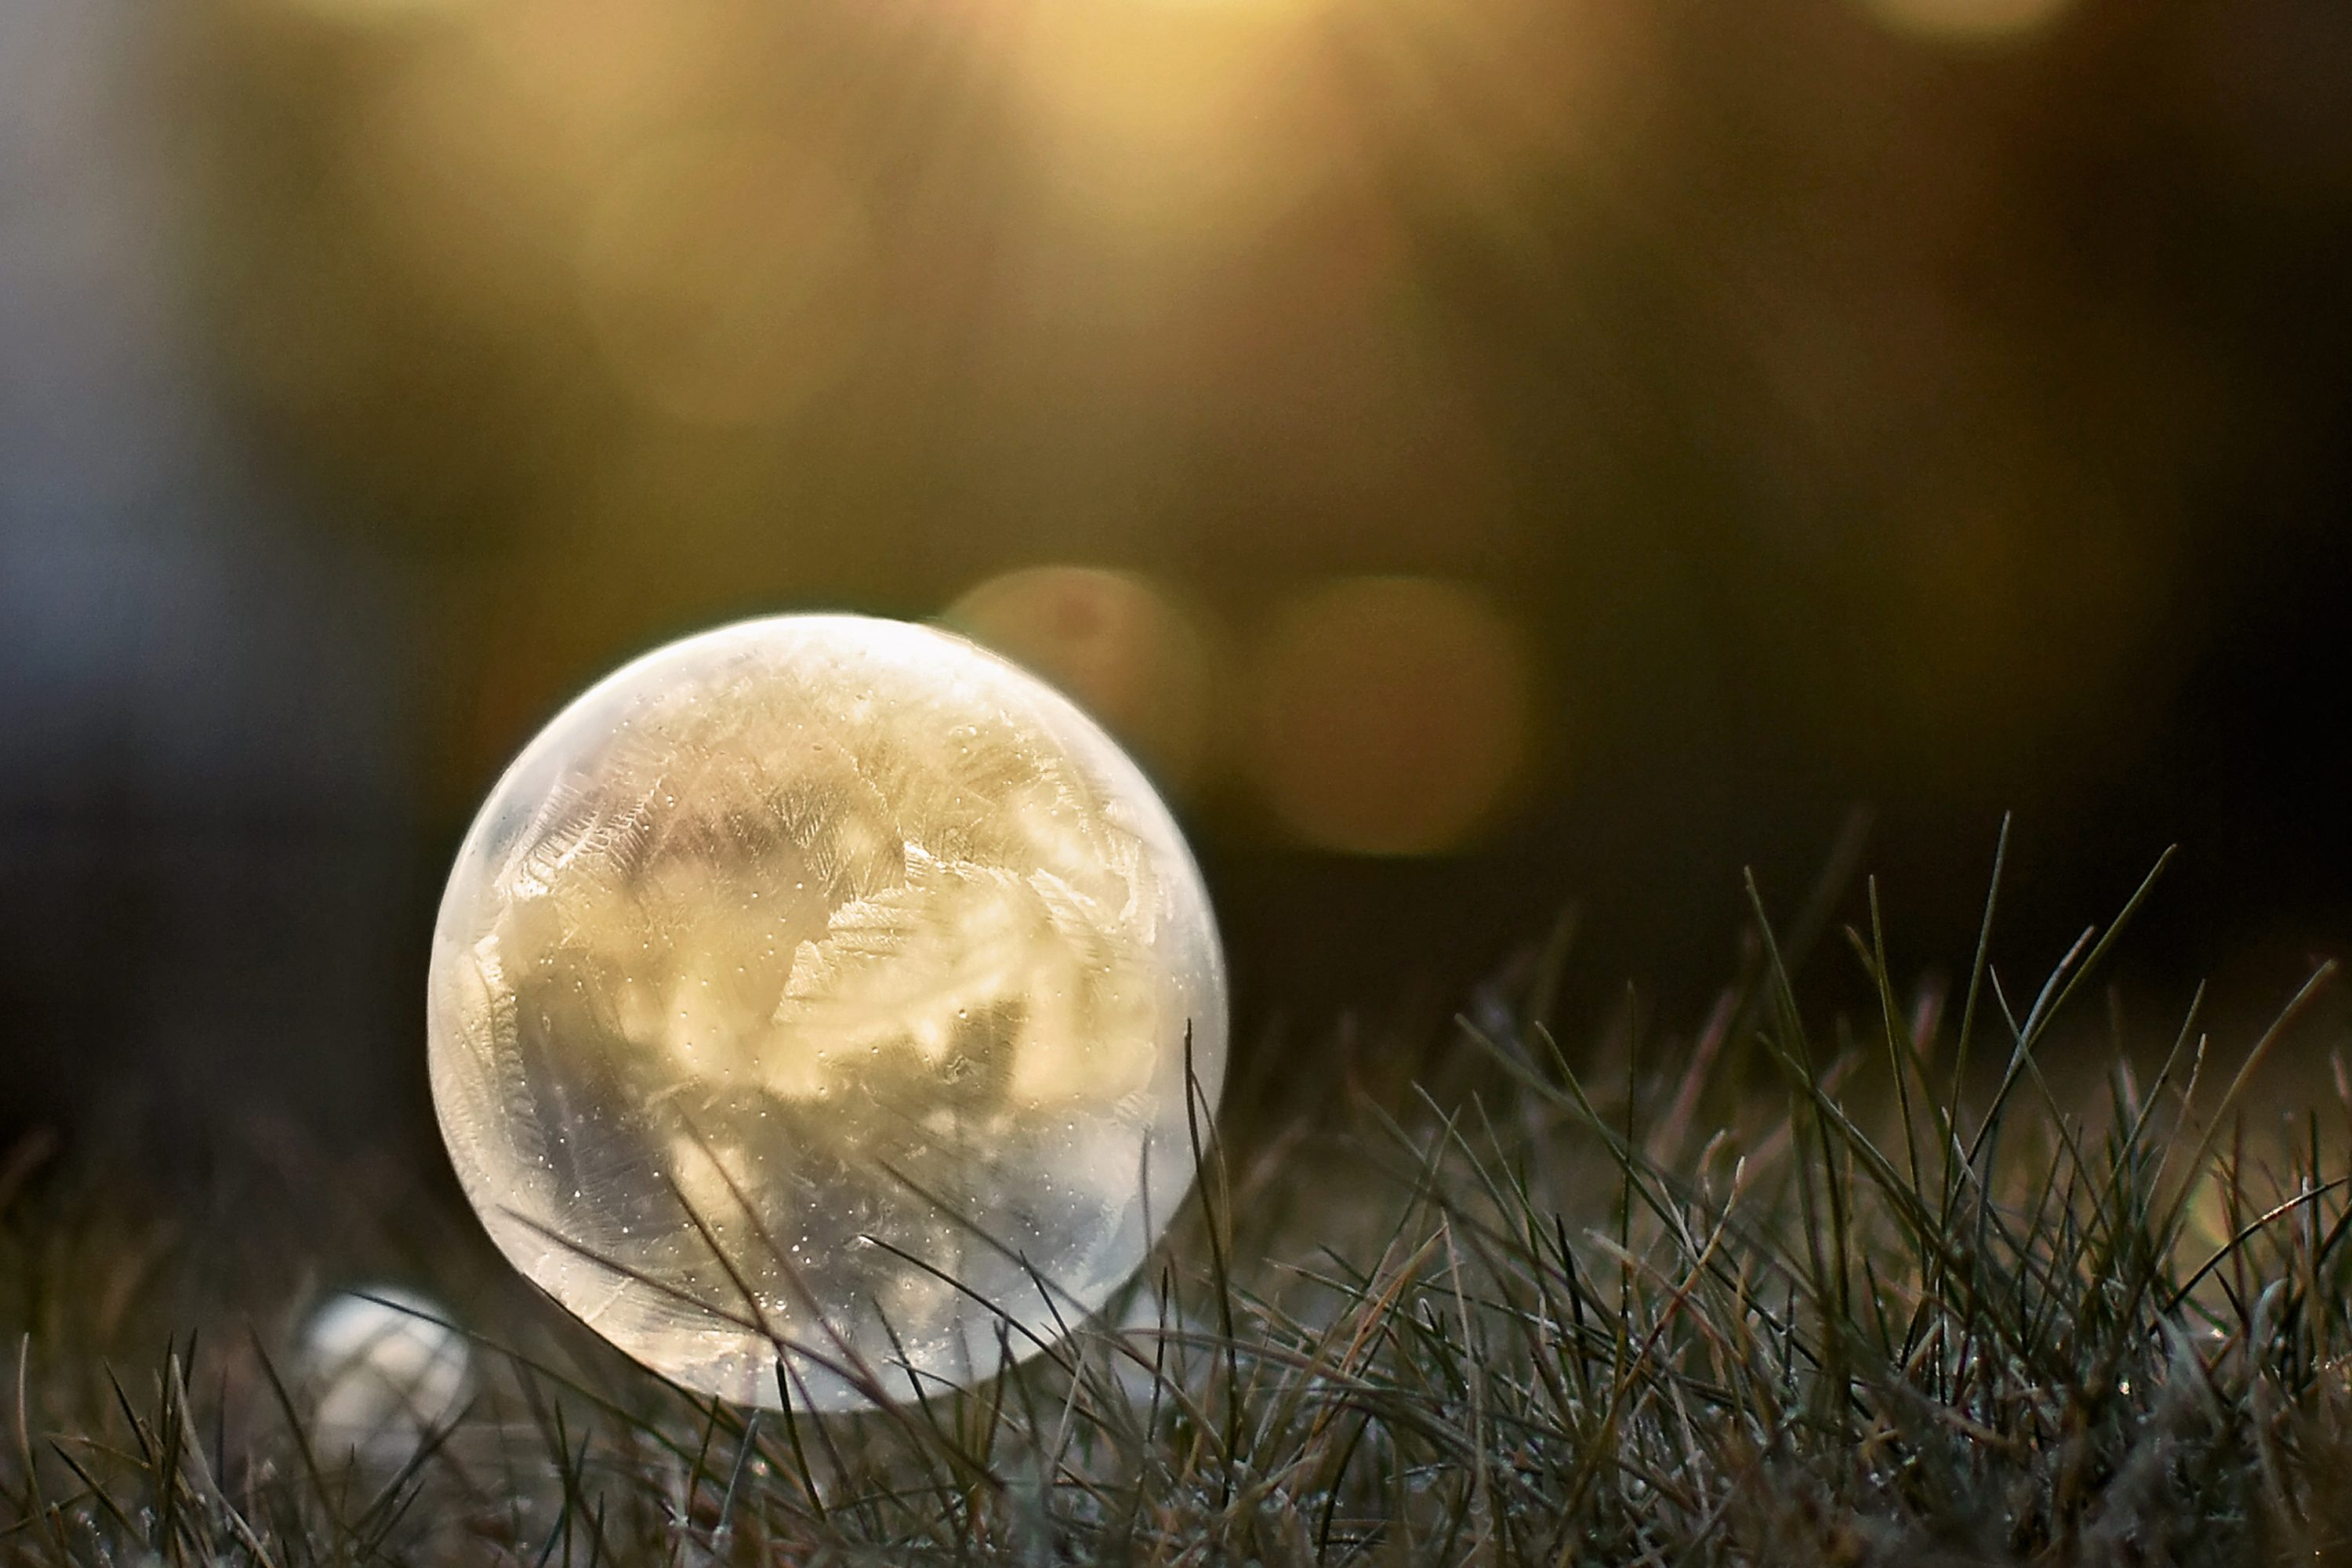 How to take Pictures of Frozen Bubbles